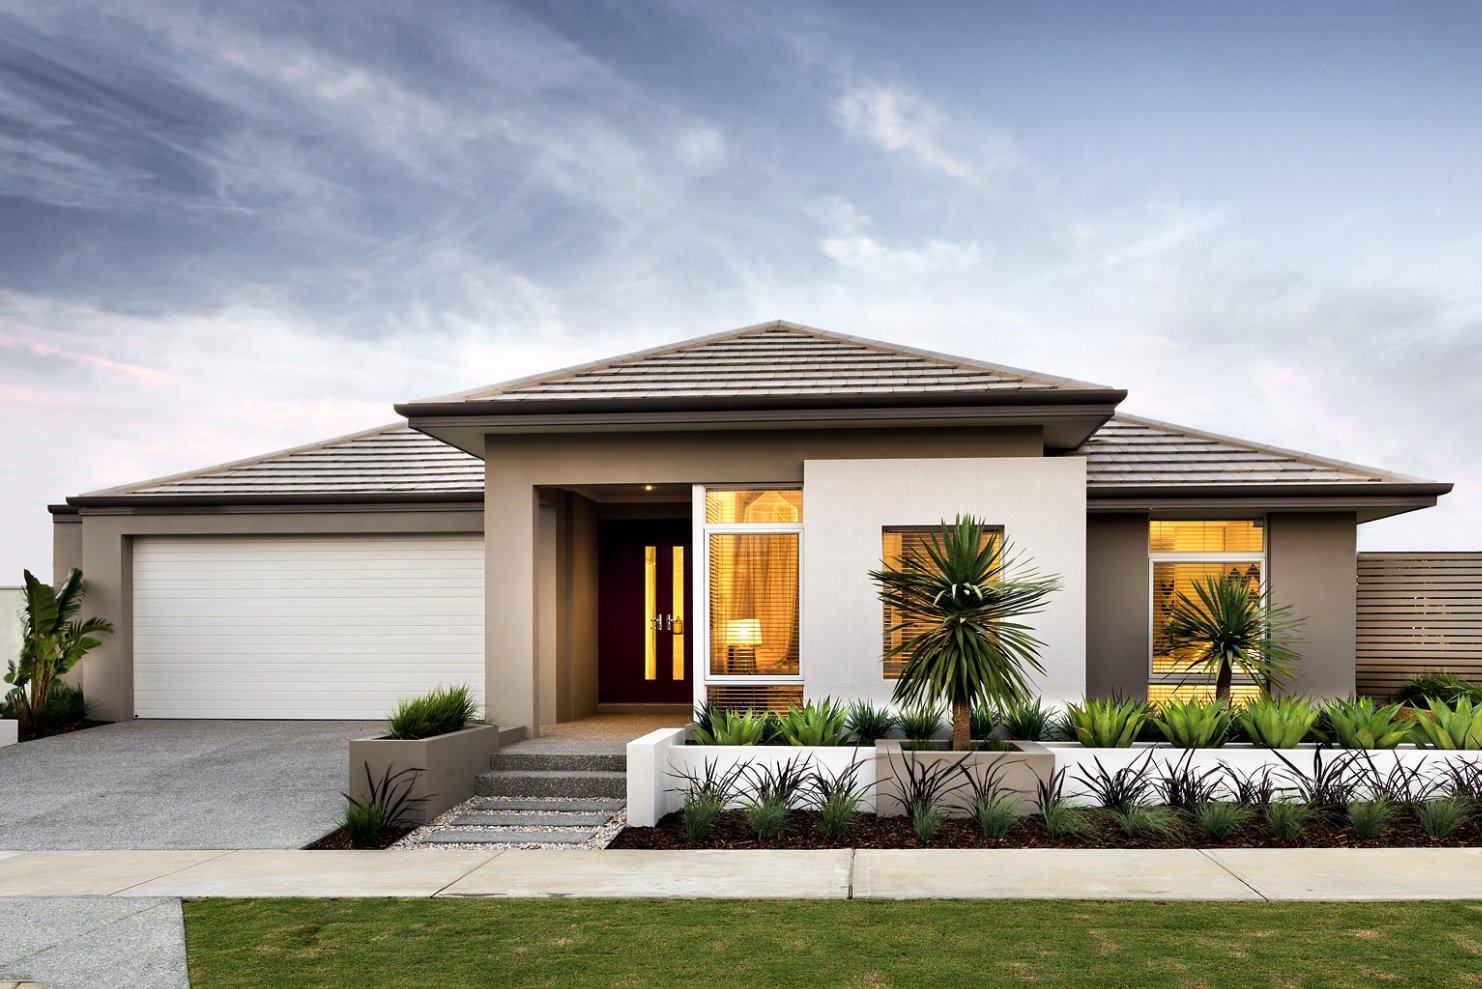 House And Land Packages Perth WA   New Homes   Home Designs   Marrakech    Dale